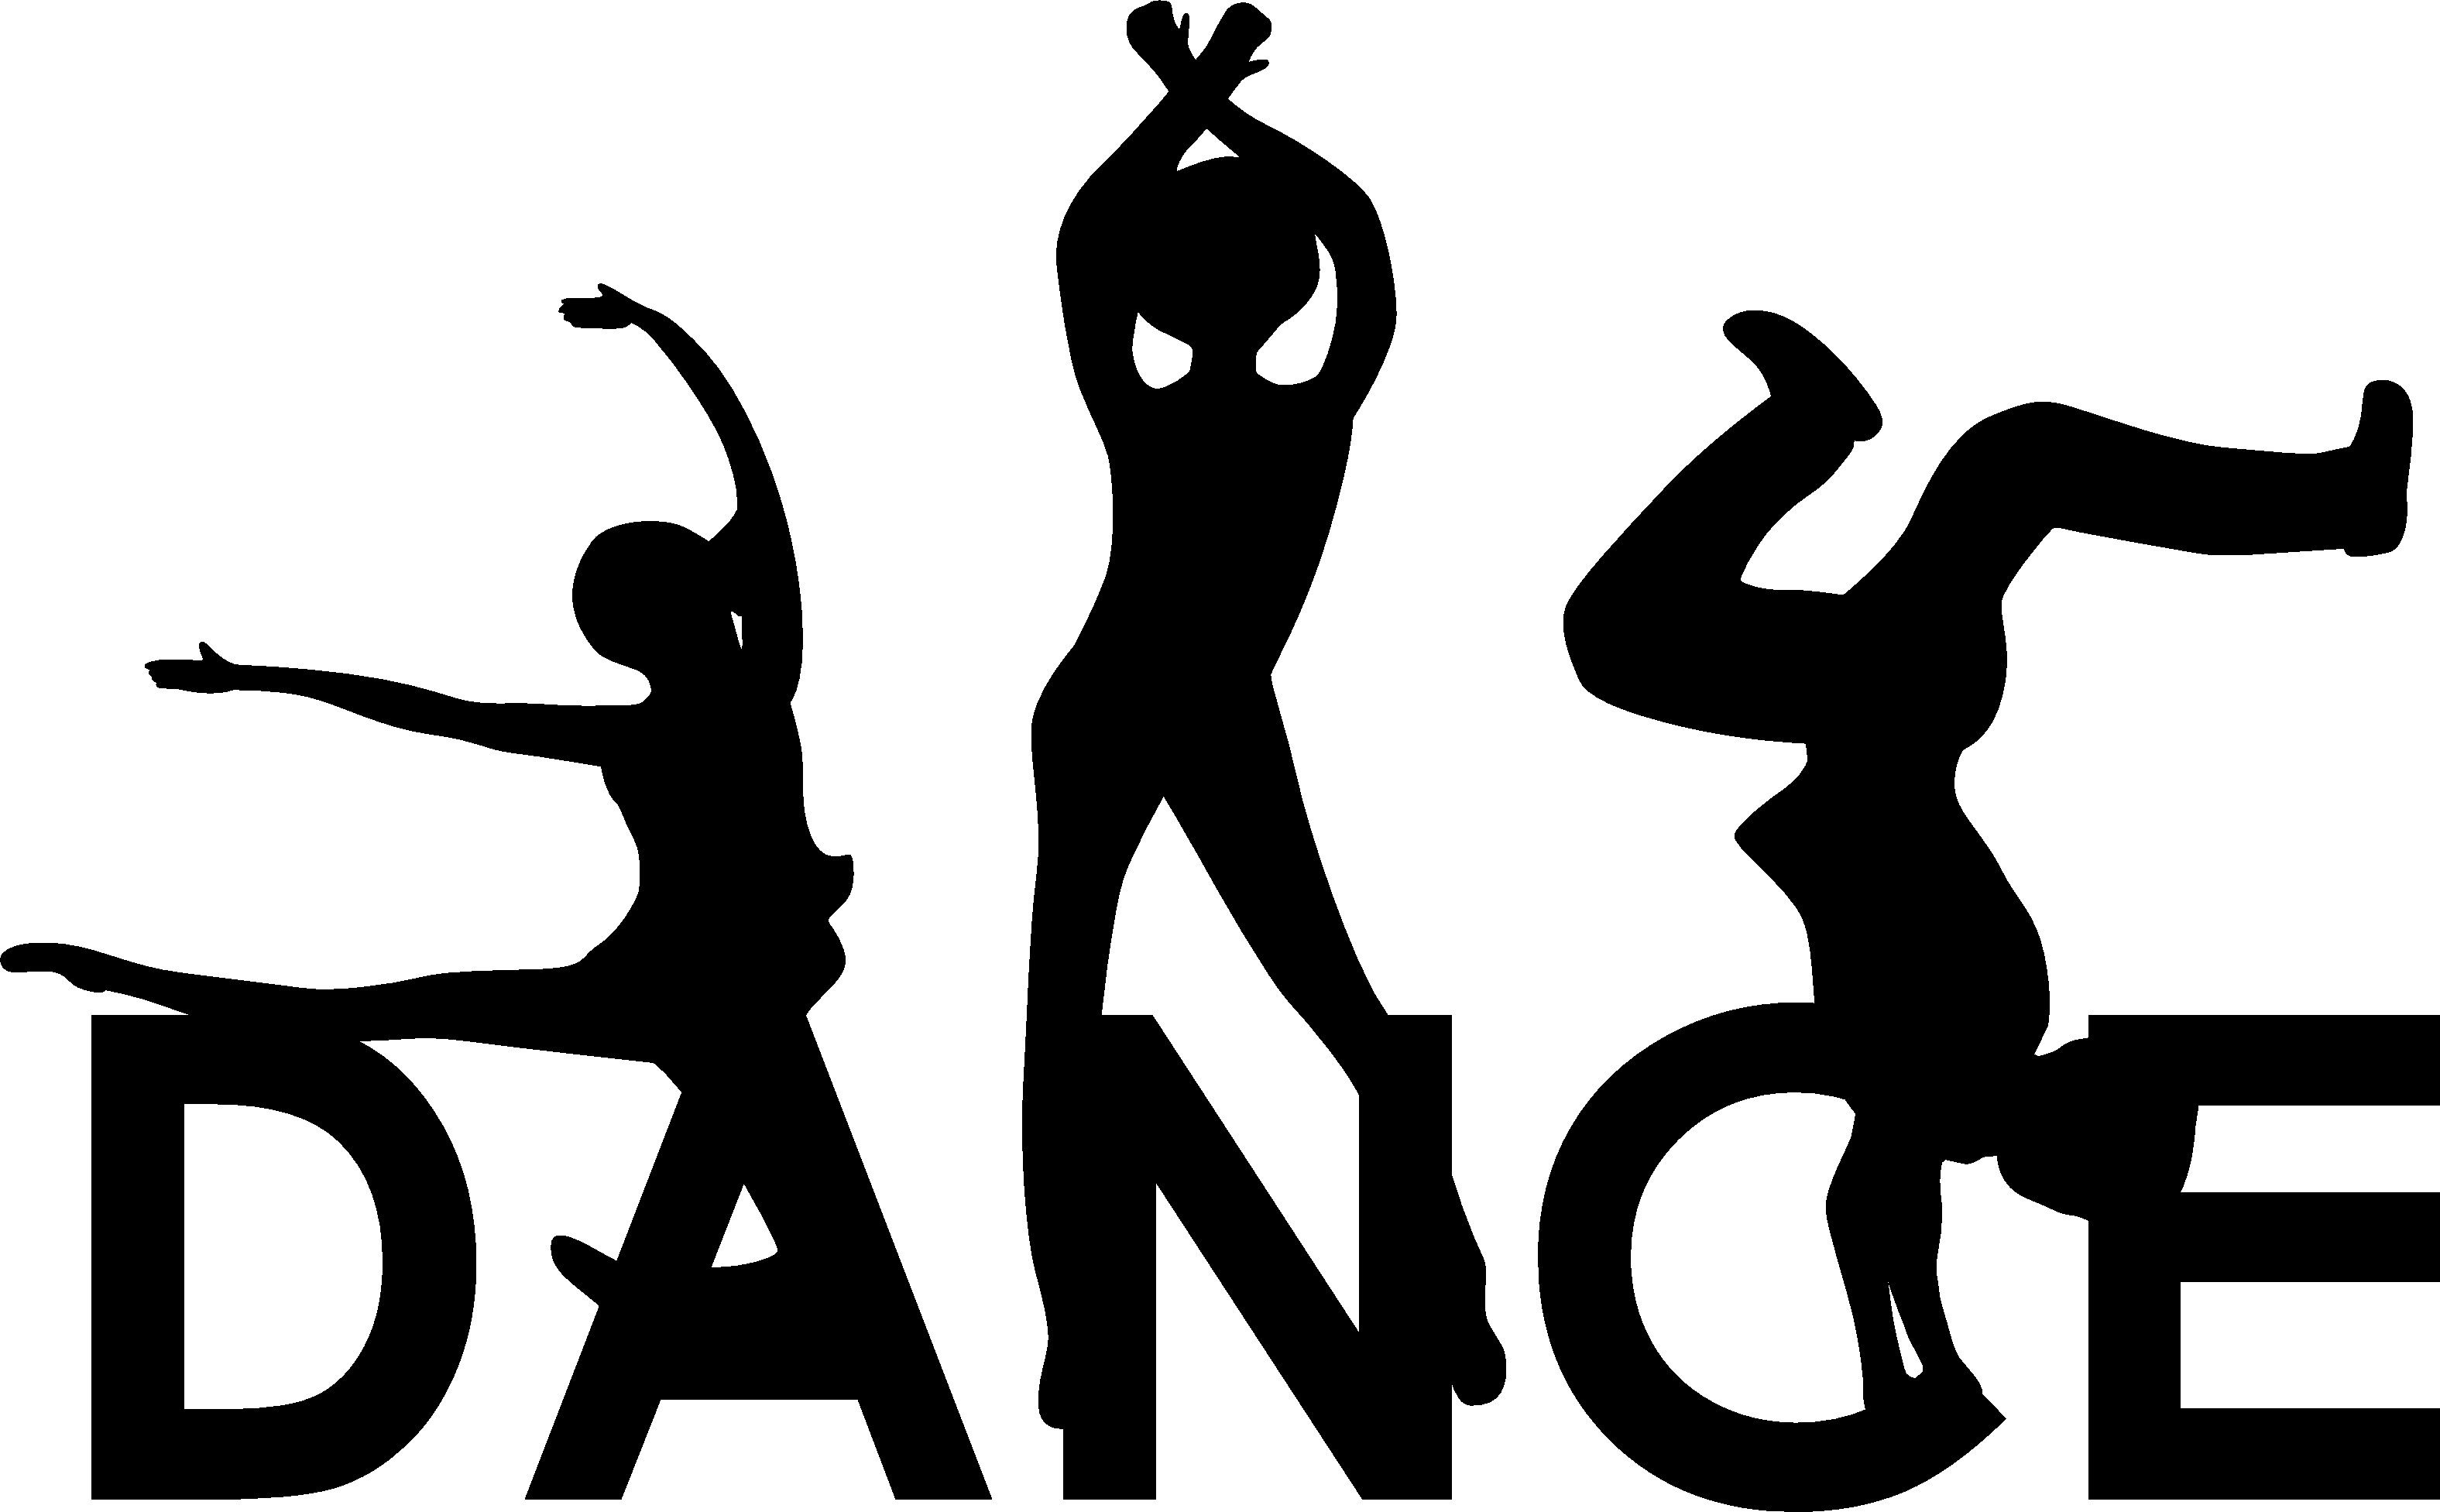 x in pictures. Club clipart dance club